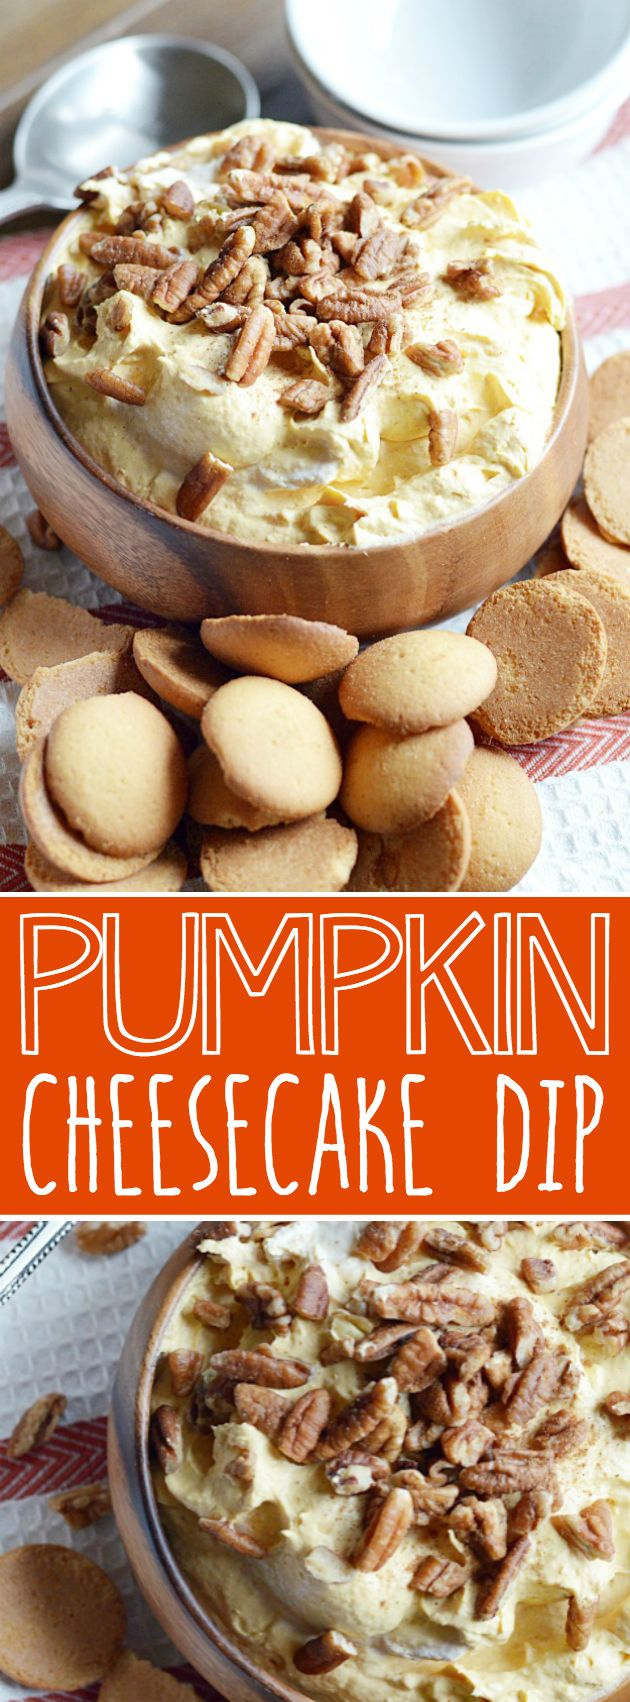 Dreamy, creamy Pumpkin Cheesecake Dip is an easy no-bake recipe to make and always a crowd pleaser. Bursting with Fall time flavors!